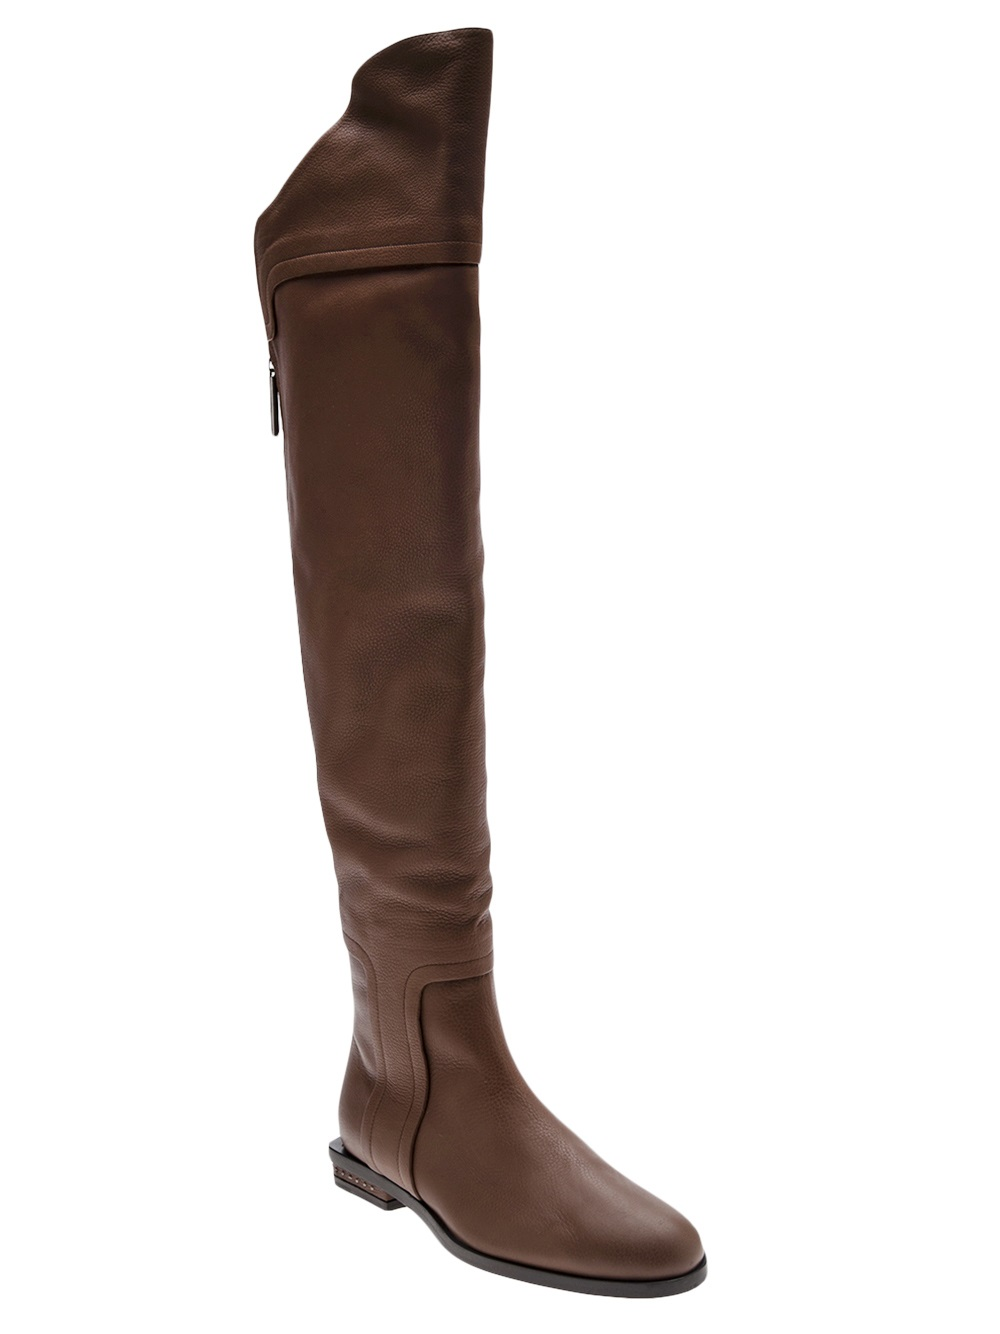 Shop Frye for the finest selection of Knee High and Over-the-Knee Boots, handcrafted Founded in  · Premium Leathers · Free Shipping · Summer New Arrivals12,+ followers on Twitter.